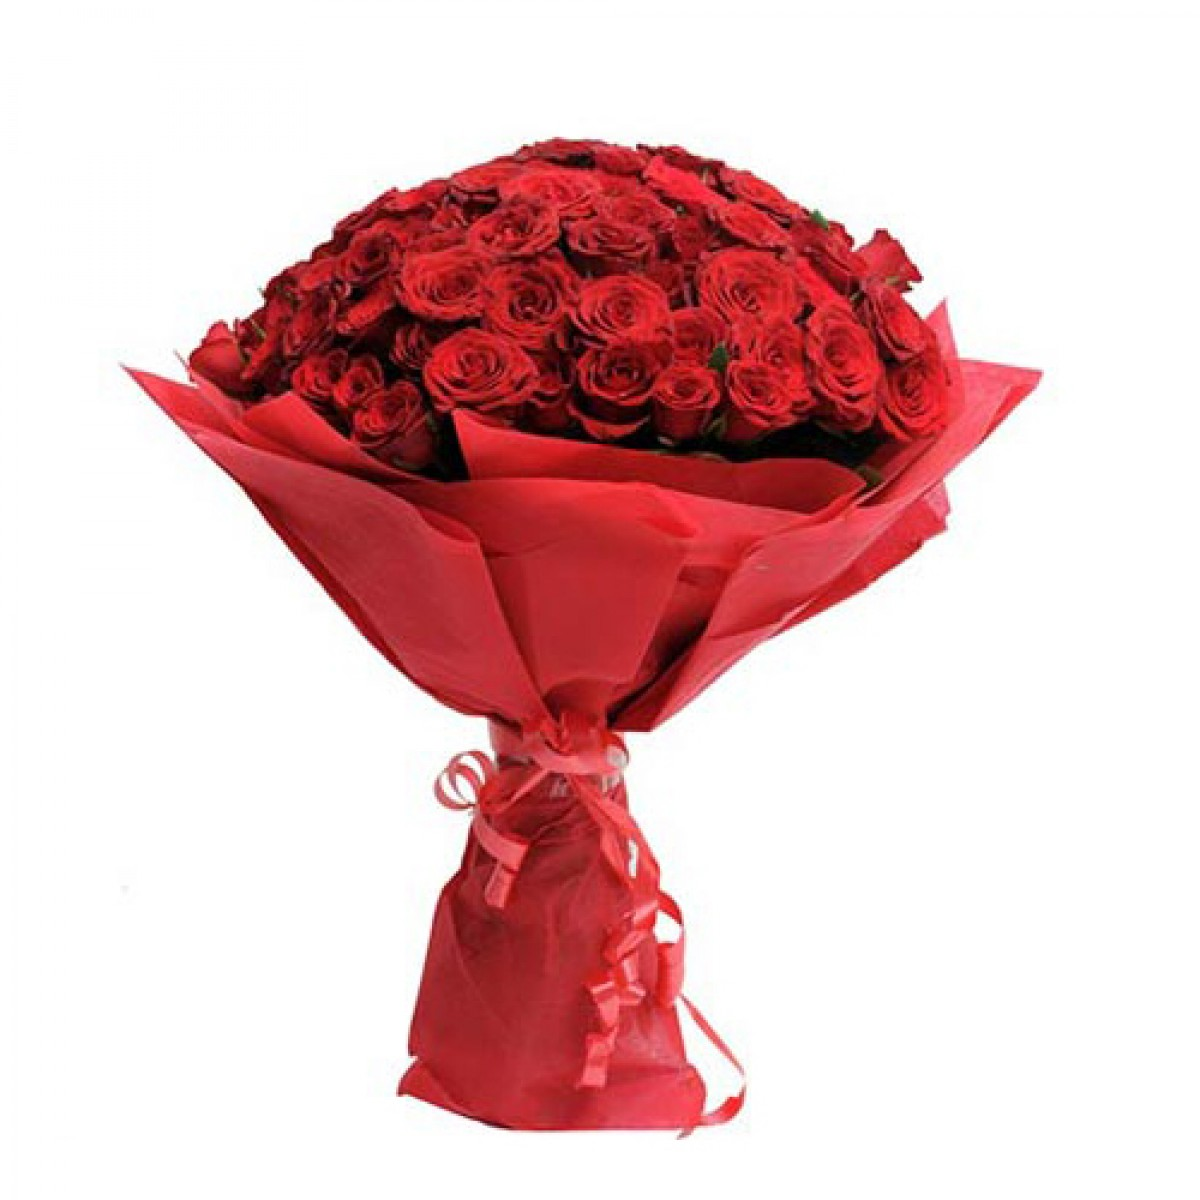 Red Rose Flower Bouquet   Buy Gifts Online More Views